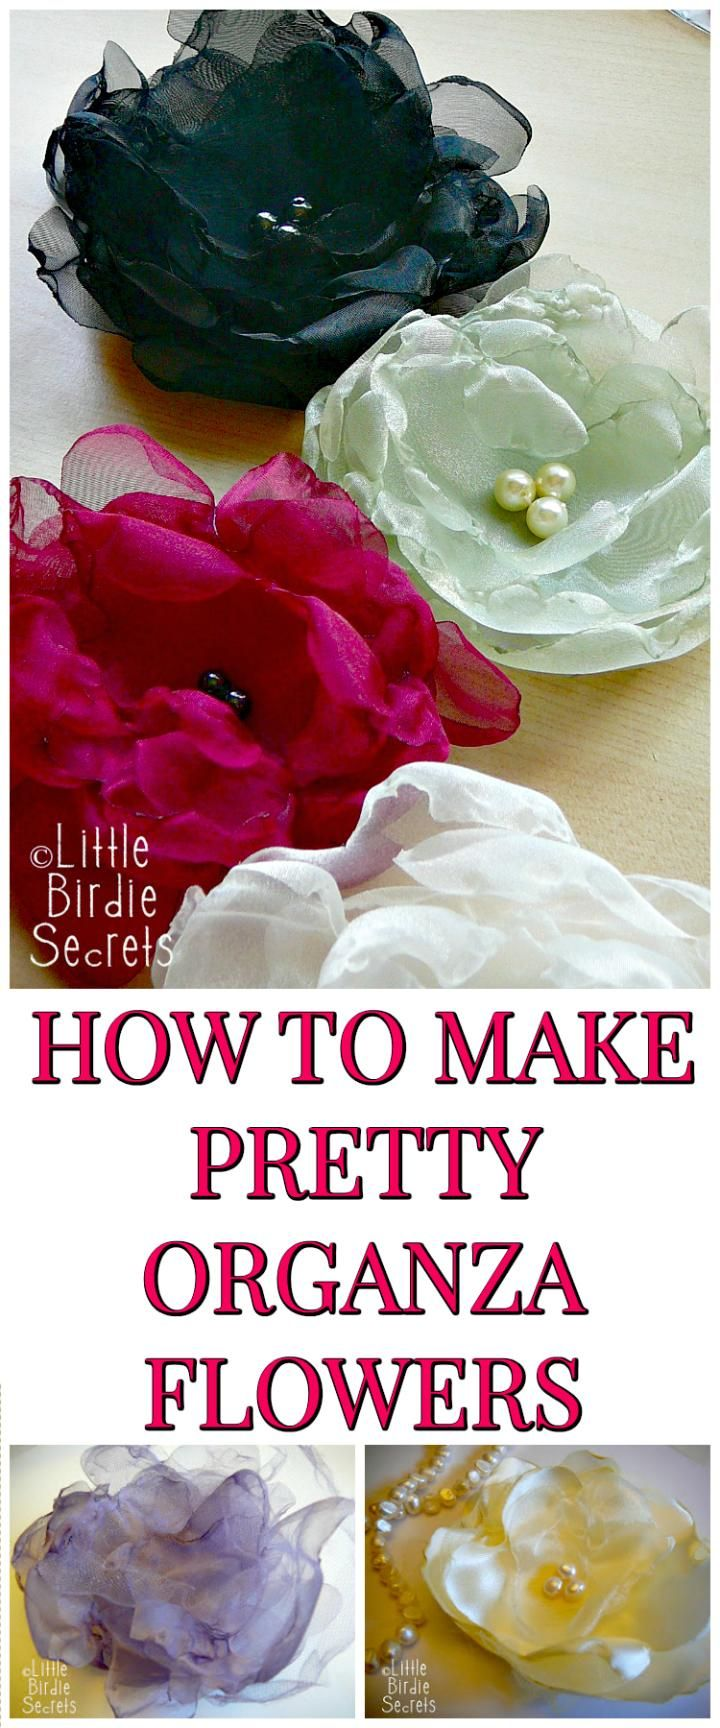 HOW TO MAKE PRETTY ORGANZA FLOWERS - 50 Easy Fabric Flowers Tutorial - Make Your Own Fabric Flowers - Page 3 of 10 - DIY & Crafts